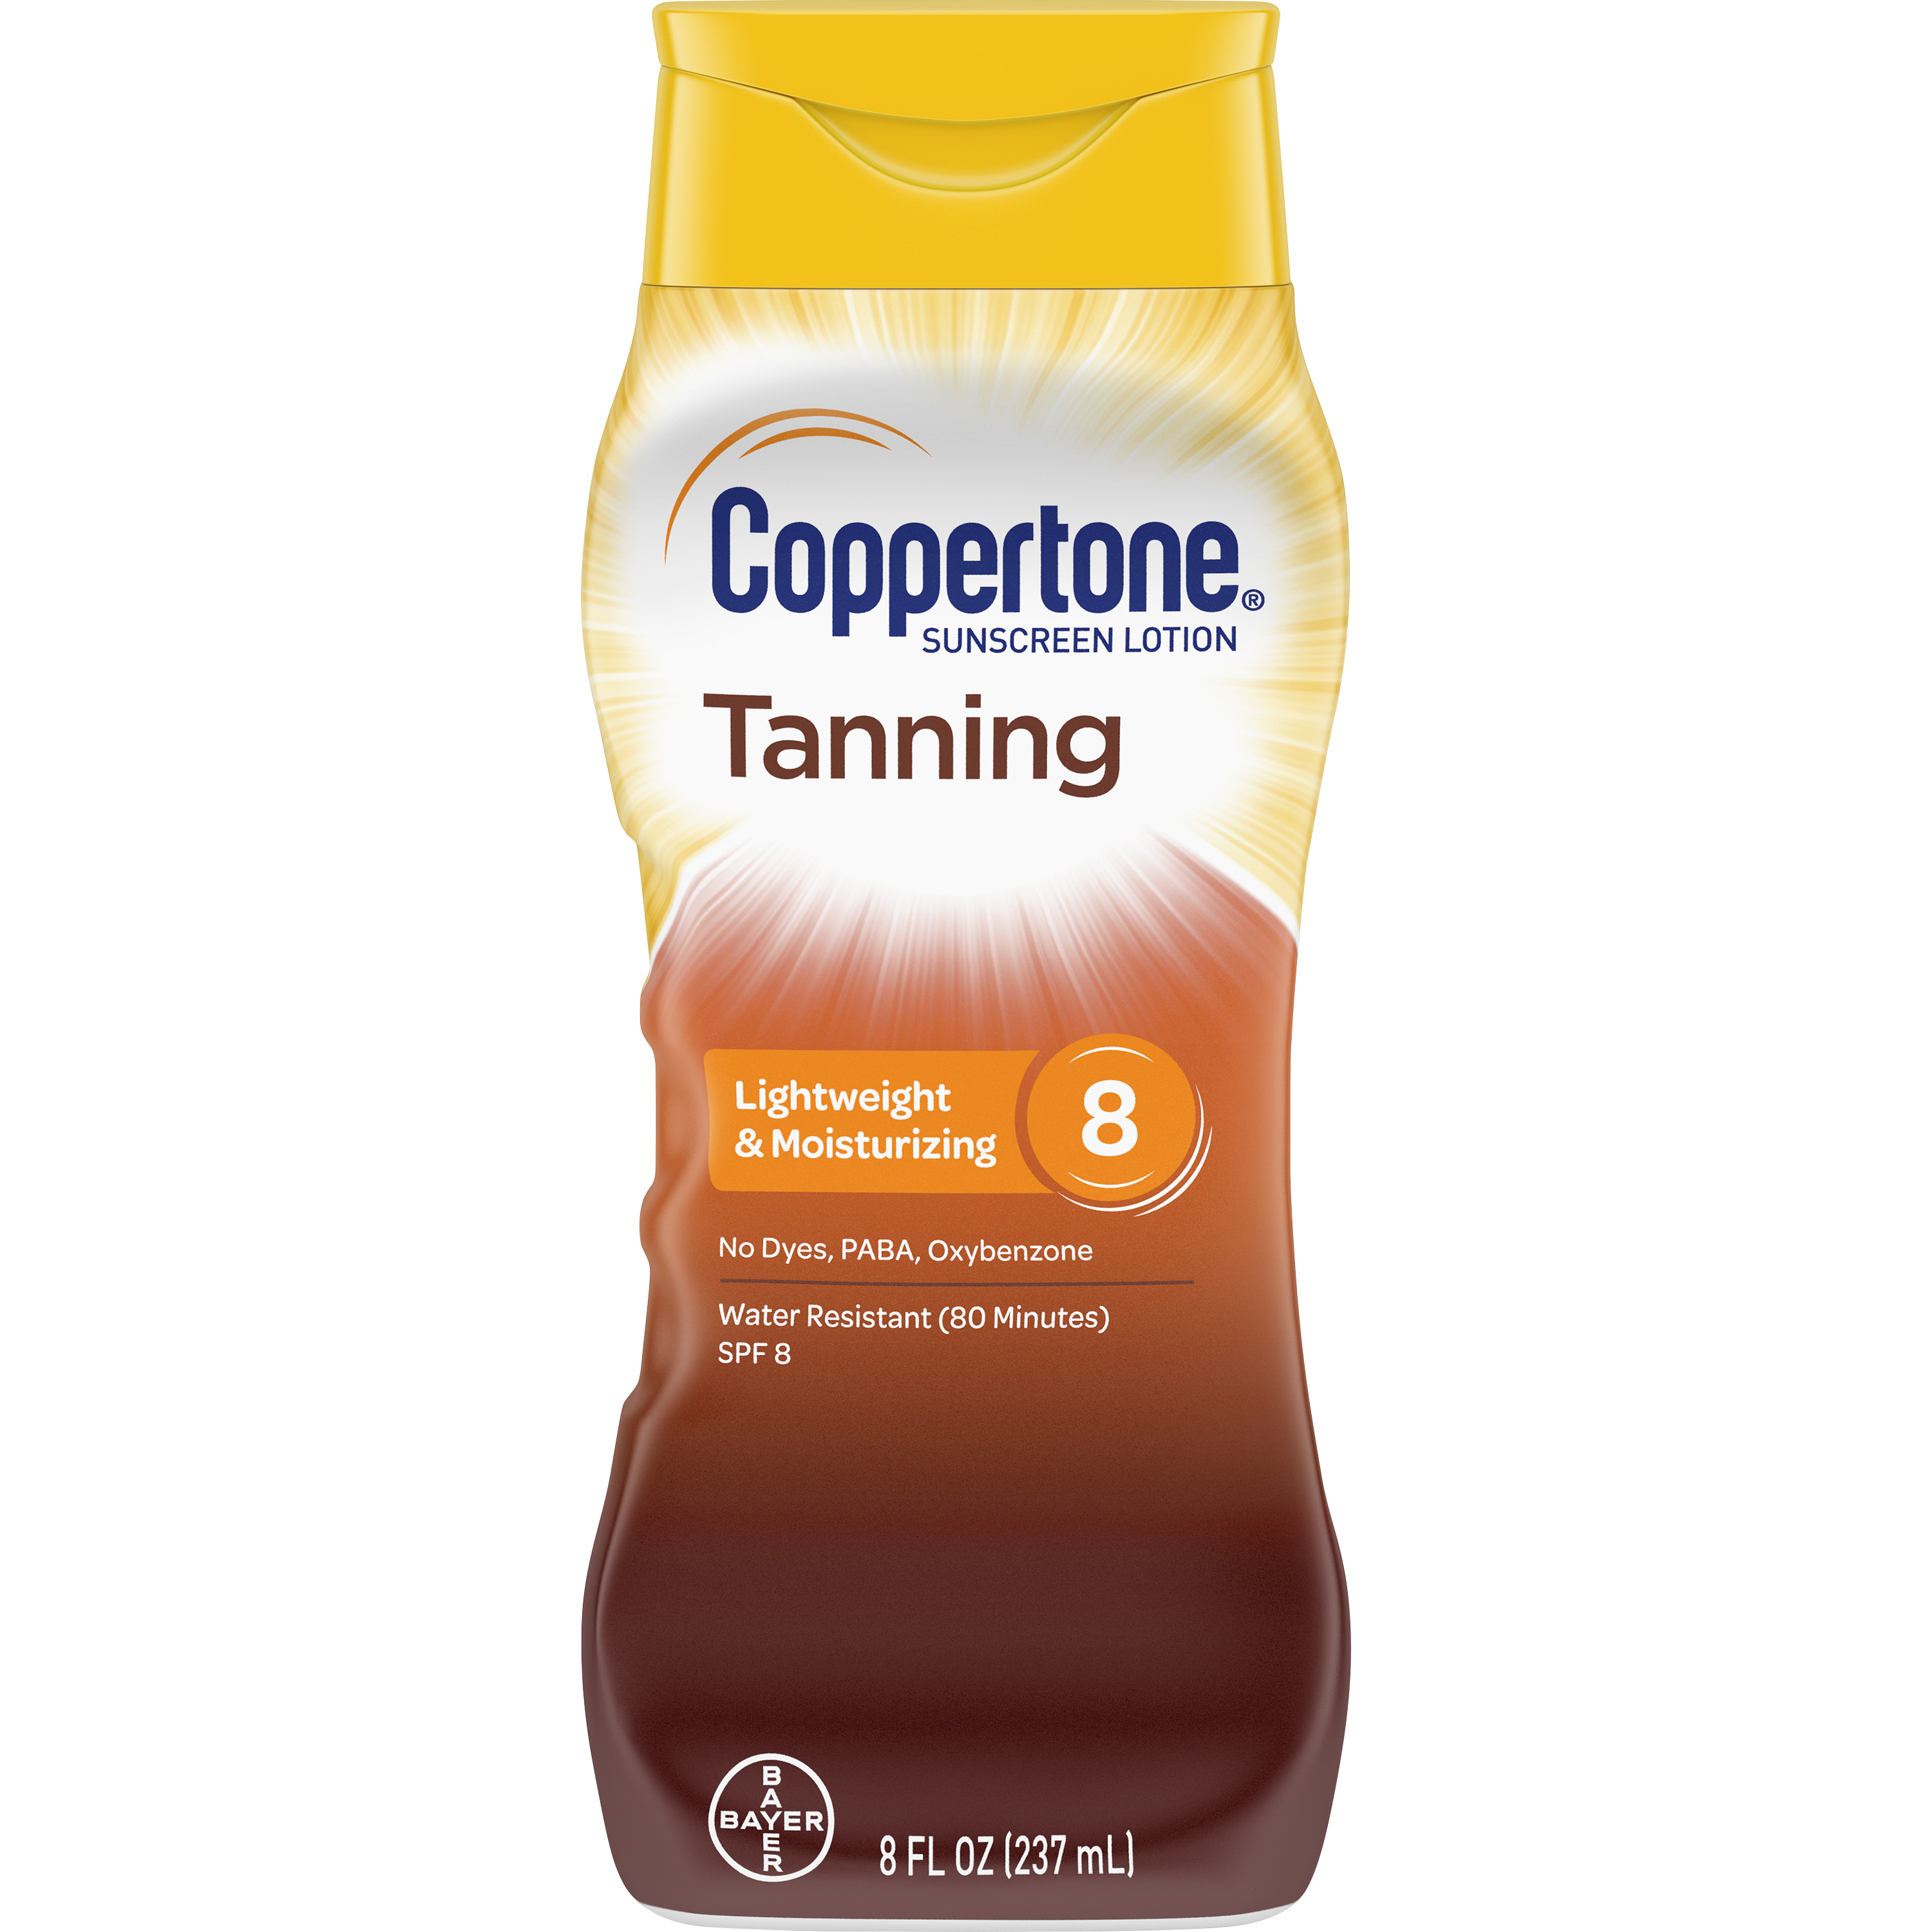 Coppertone Tanning Defend & Glow Sunscreen photo